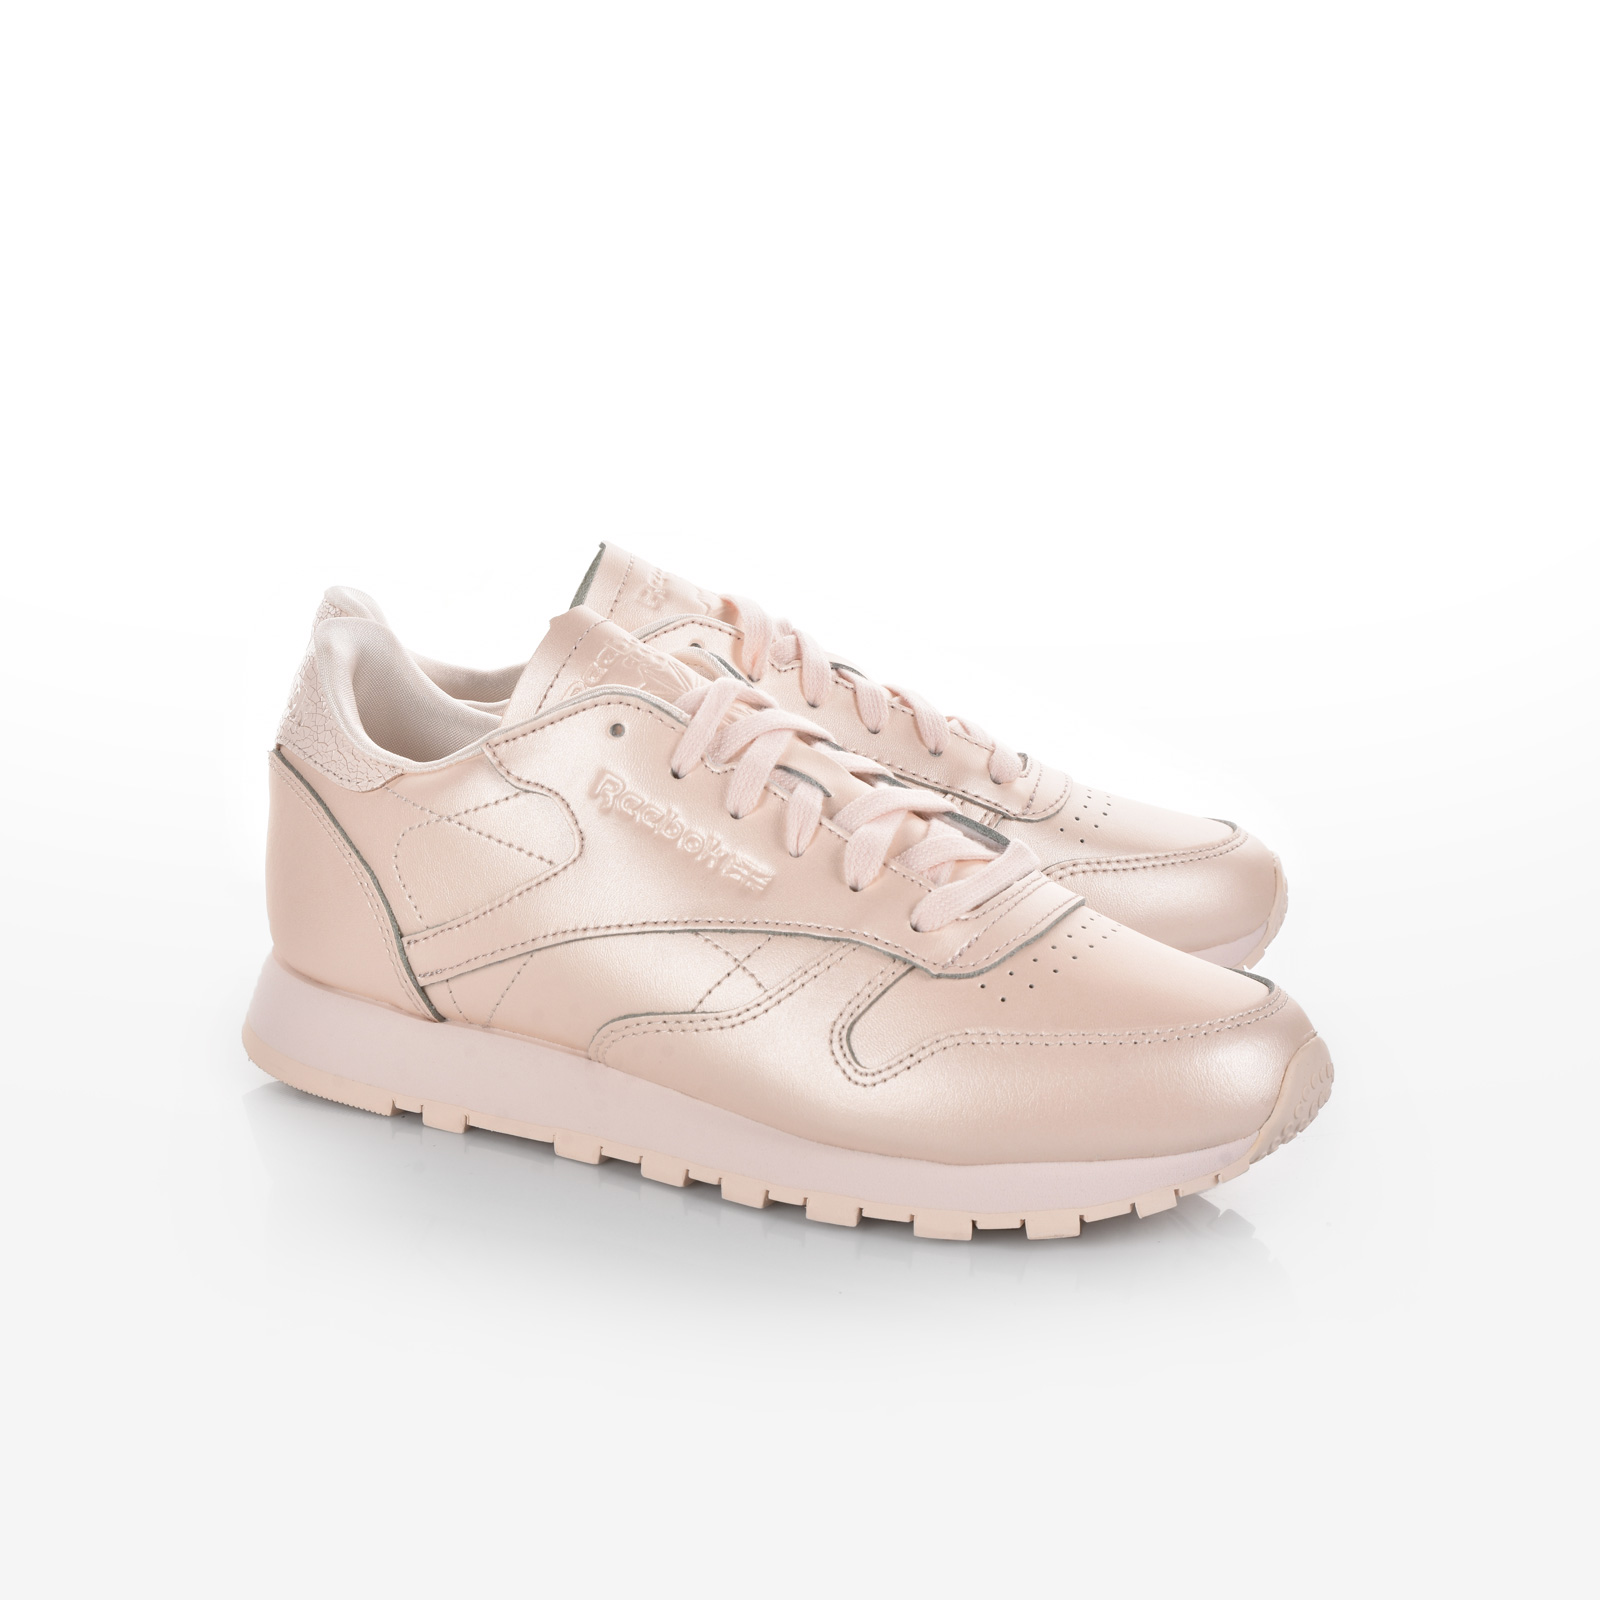 Reebok - CLASSIC LEATHER - MID-PALE PINK